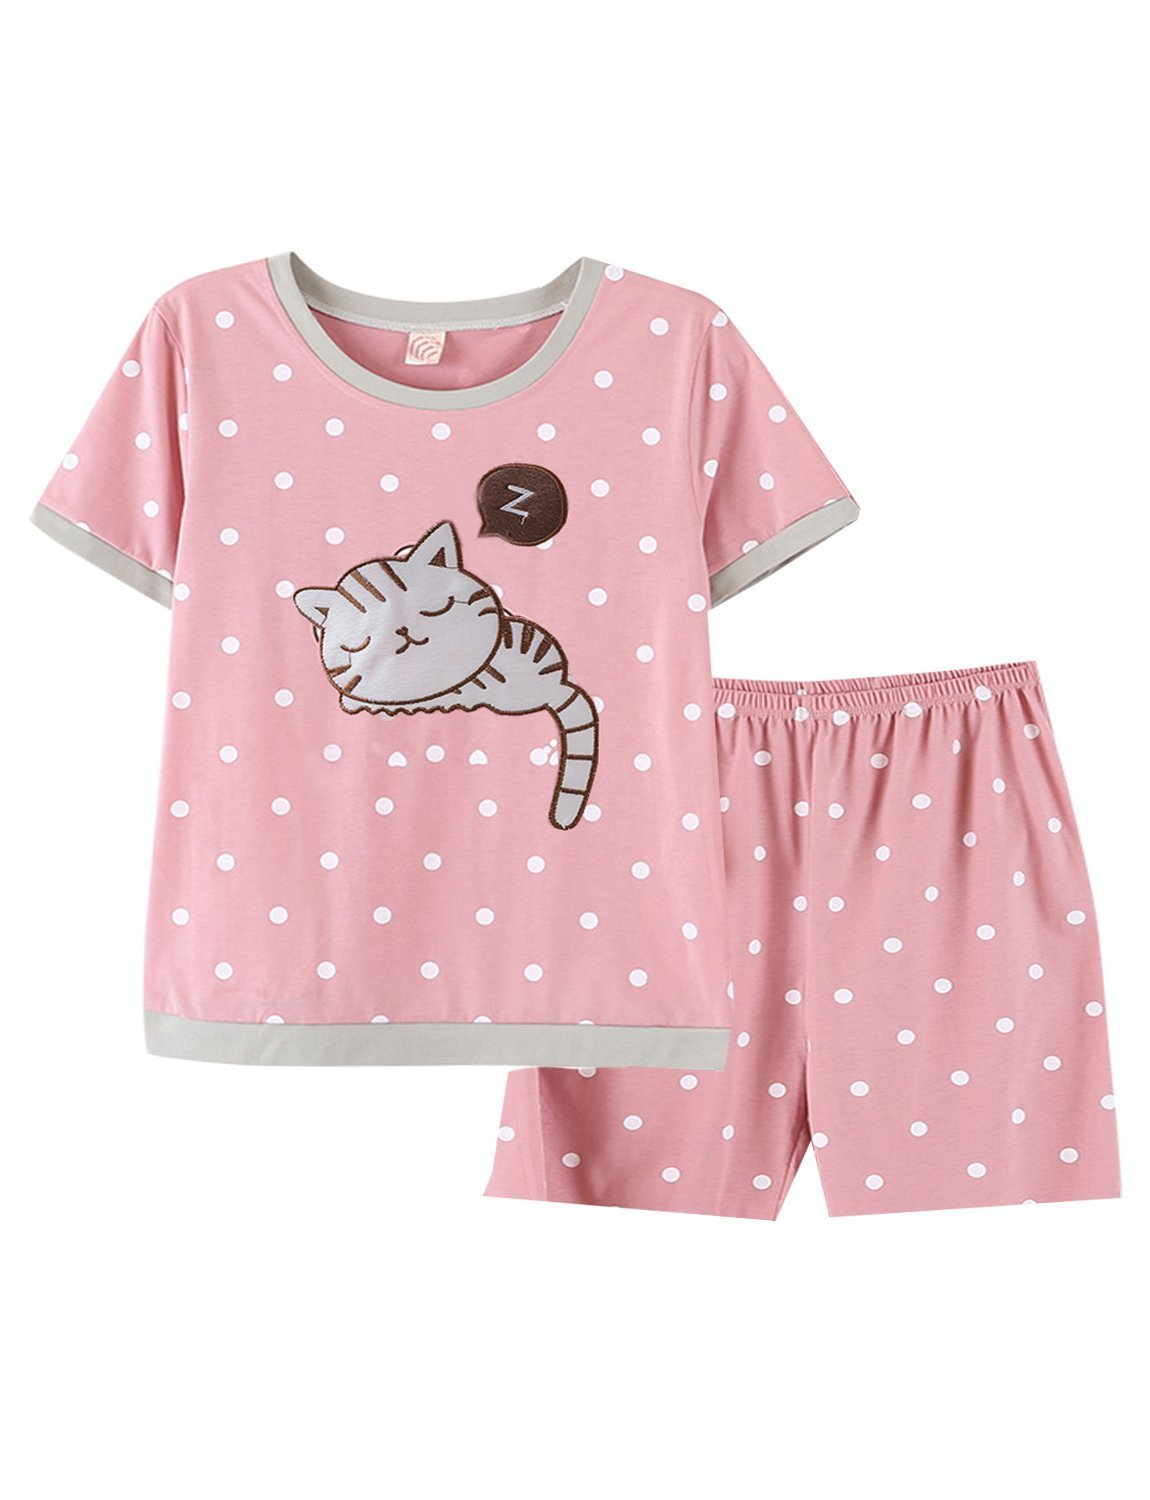 BAIYIXIN Fashion Store Summer Pink Short Pajamas Set for Young/Big Girl/Teenage Sleepwear,Pink,L(fits 8-10 Years)